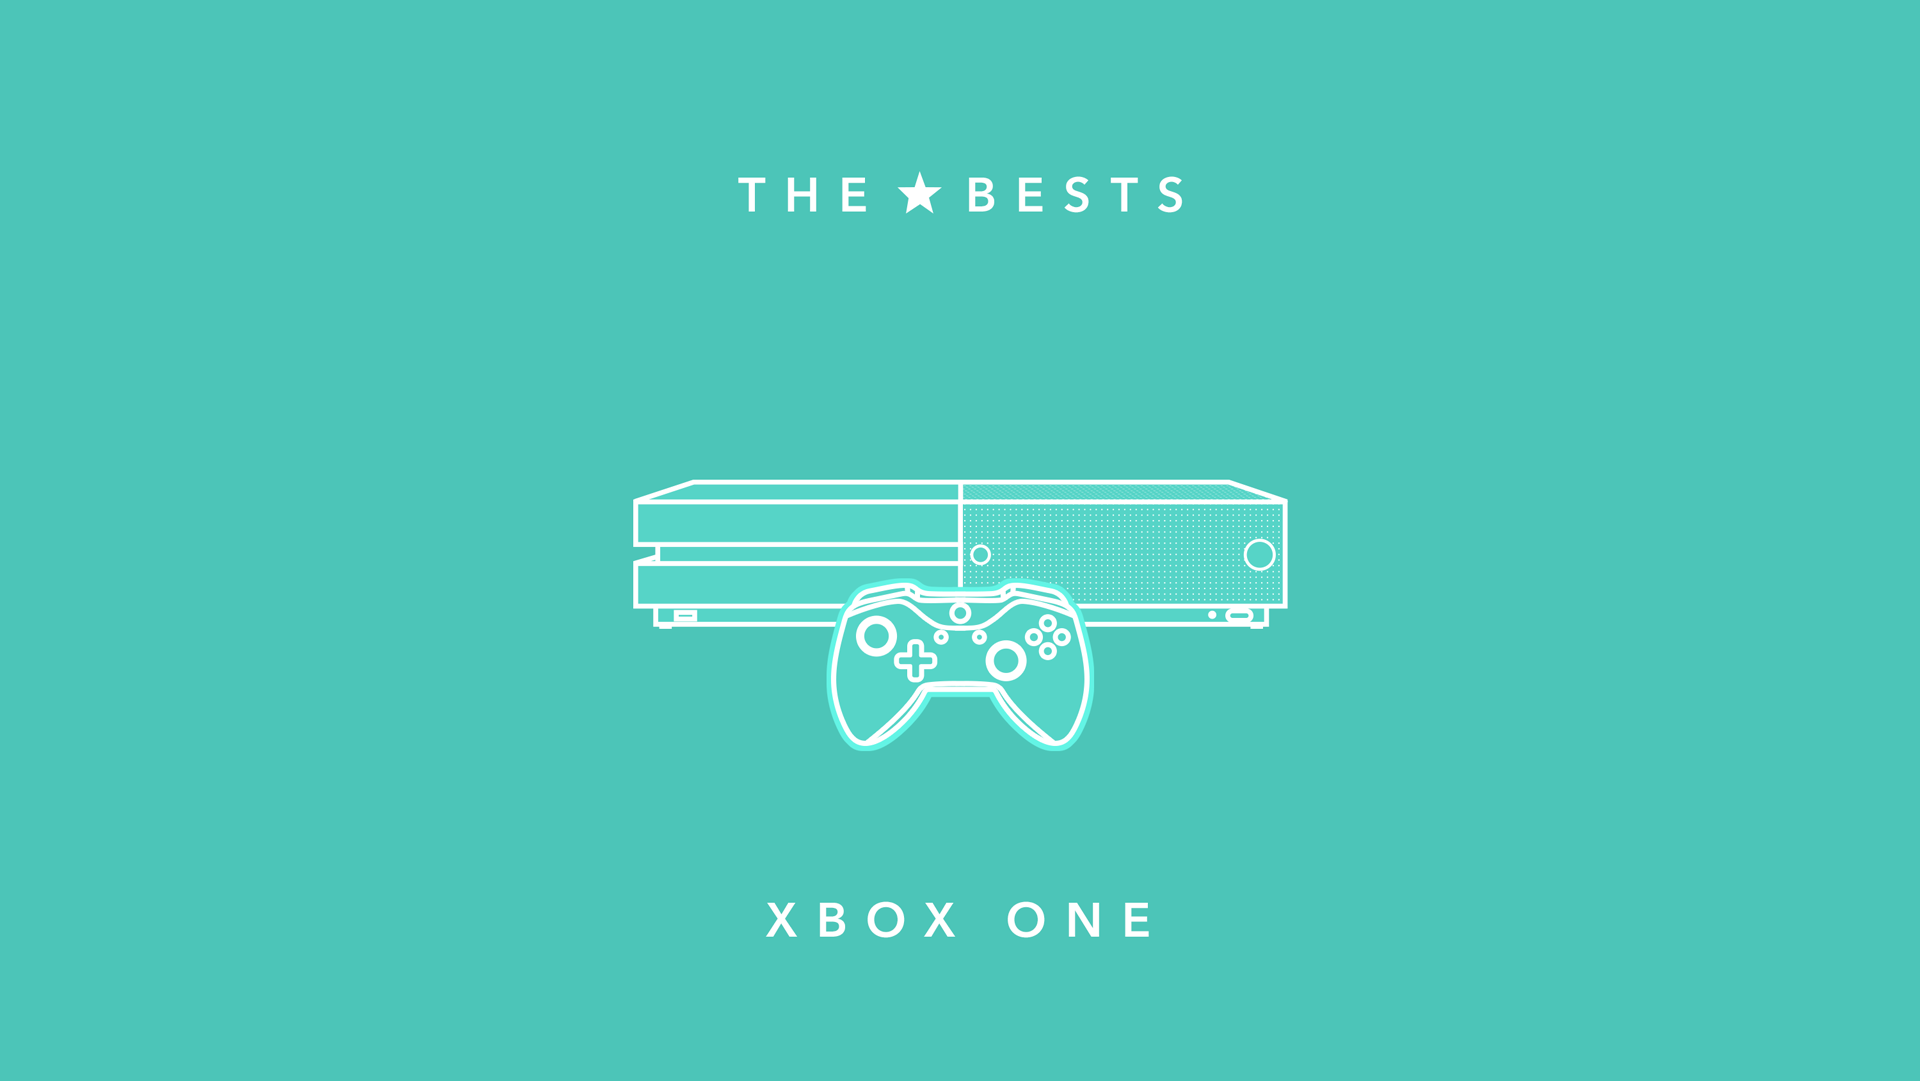 12-bests microsoft the-bests xbox-one